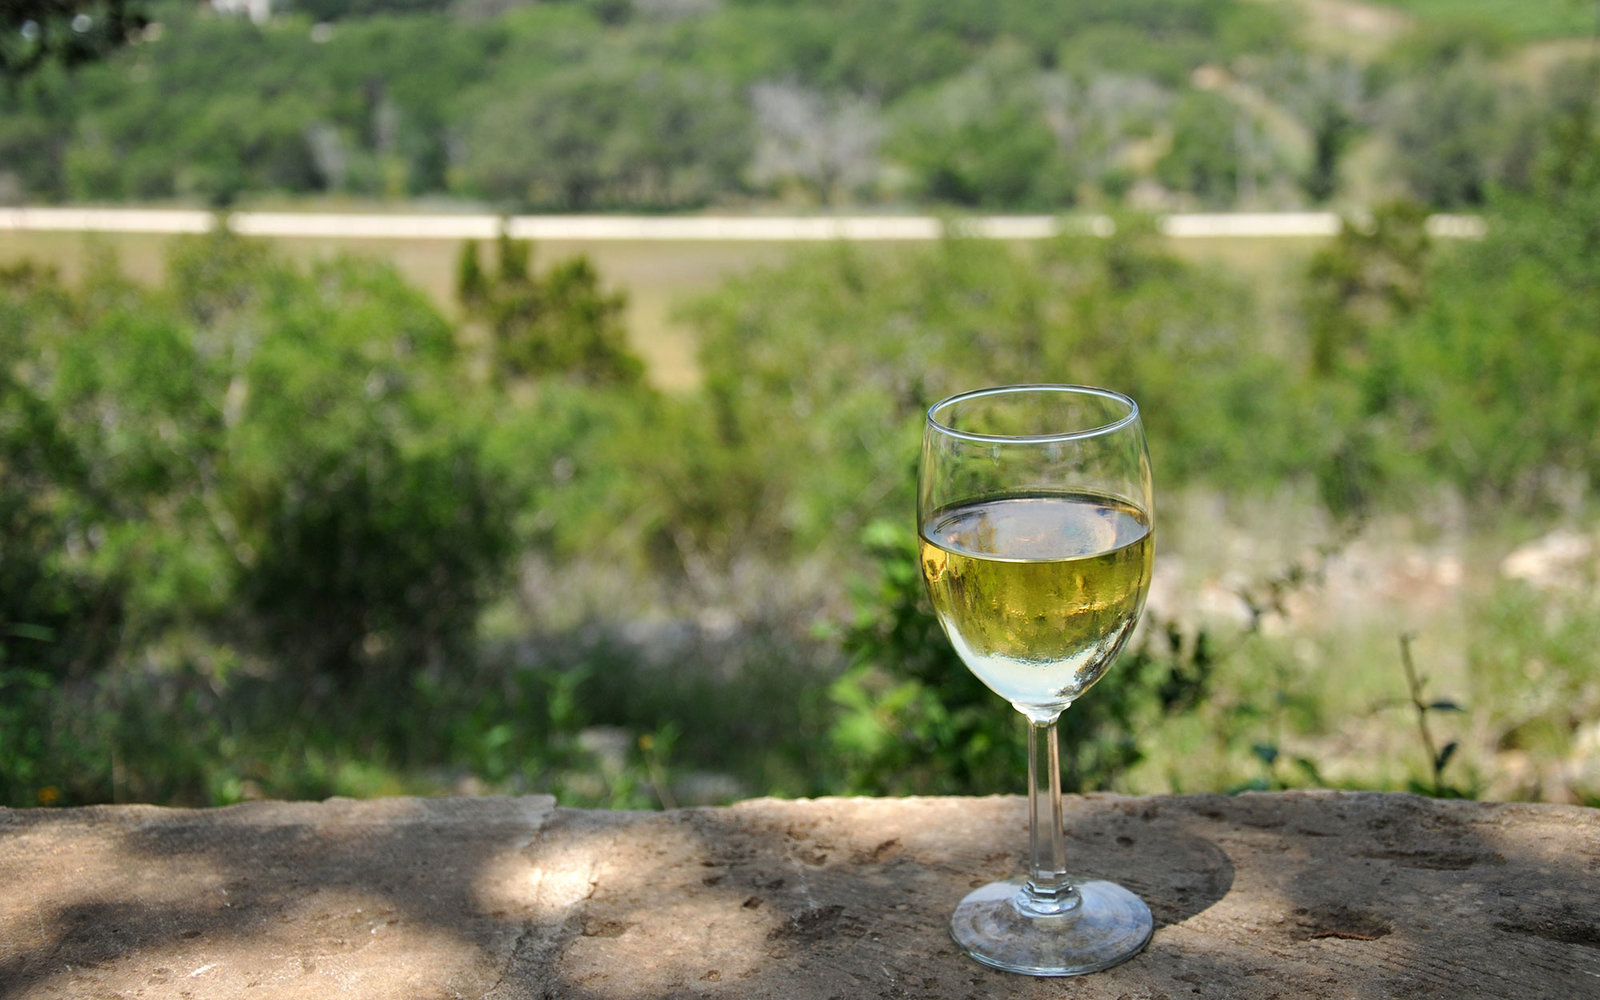 Glass of white line overlooking the scenic hill country